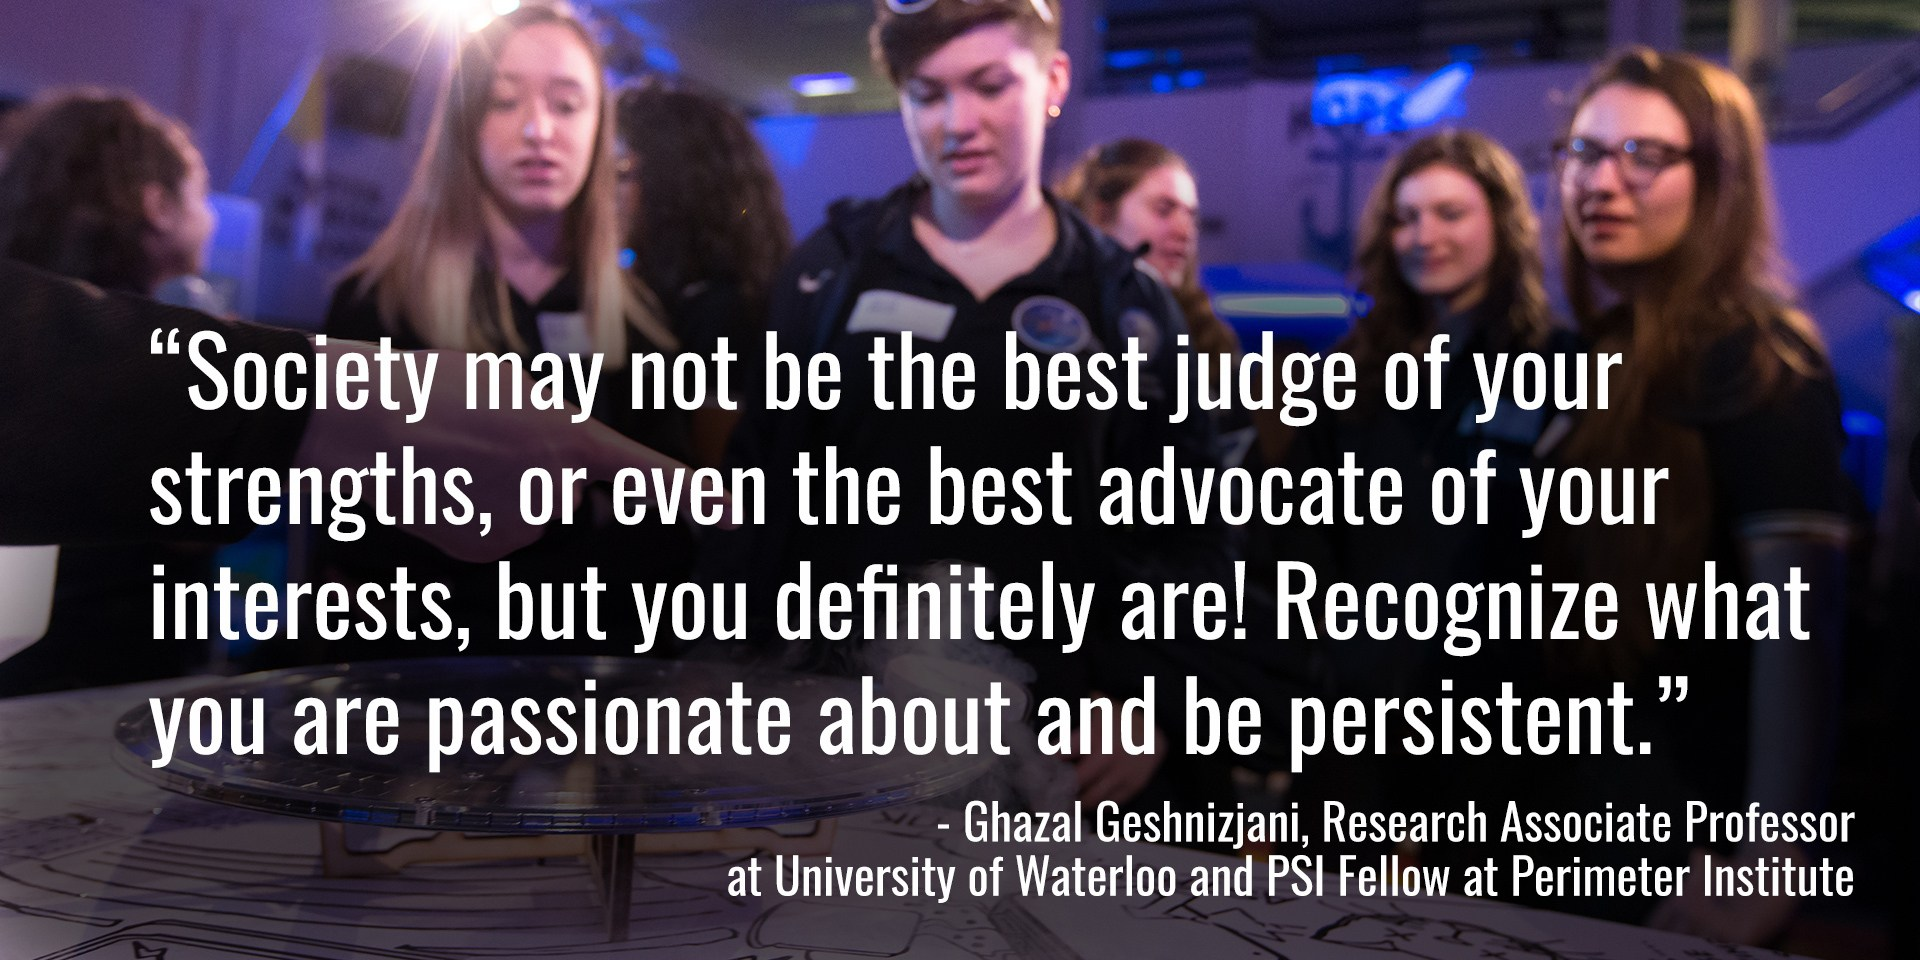 """""""Society may not be the best judge of your strengths, or even the best advocate of your interests, but you definitely are! Recognize what you are passionate about and be persistent."""" - Ghazal Geshnizjani, Research Associate Professor at University of Waterloo and PSI Fellow at Perimeter Institute"""